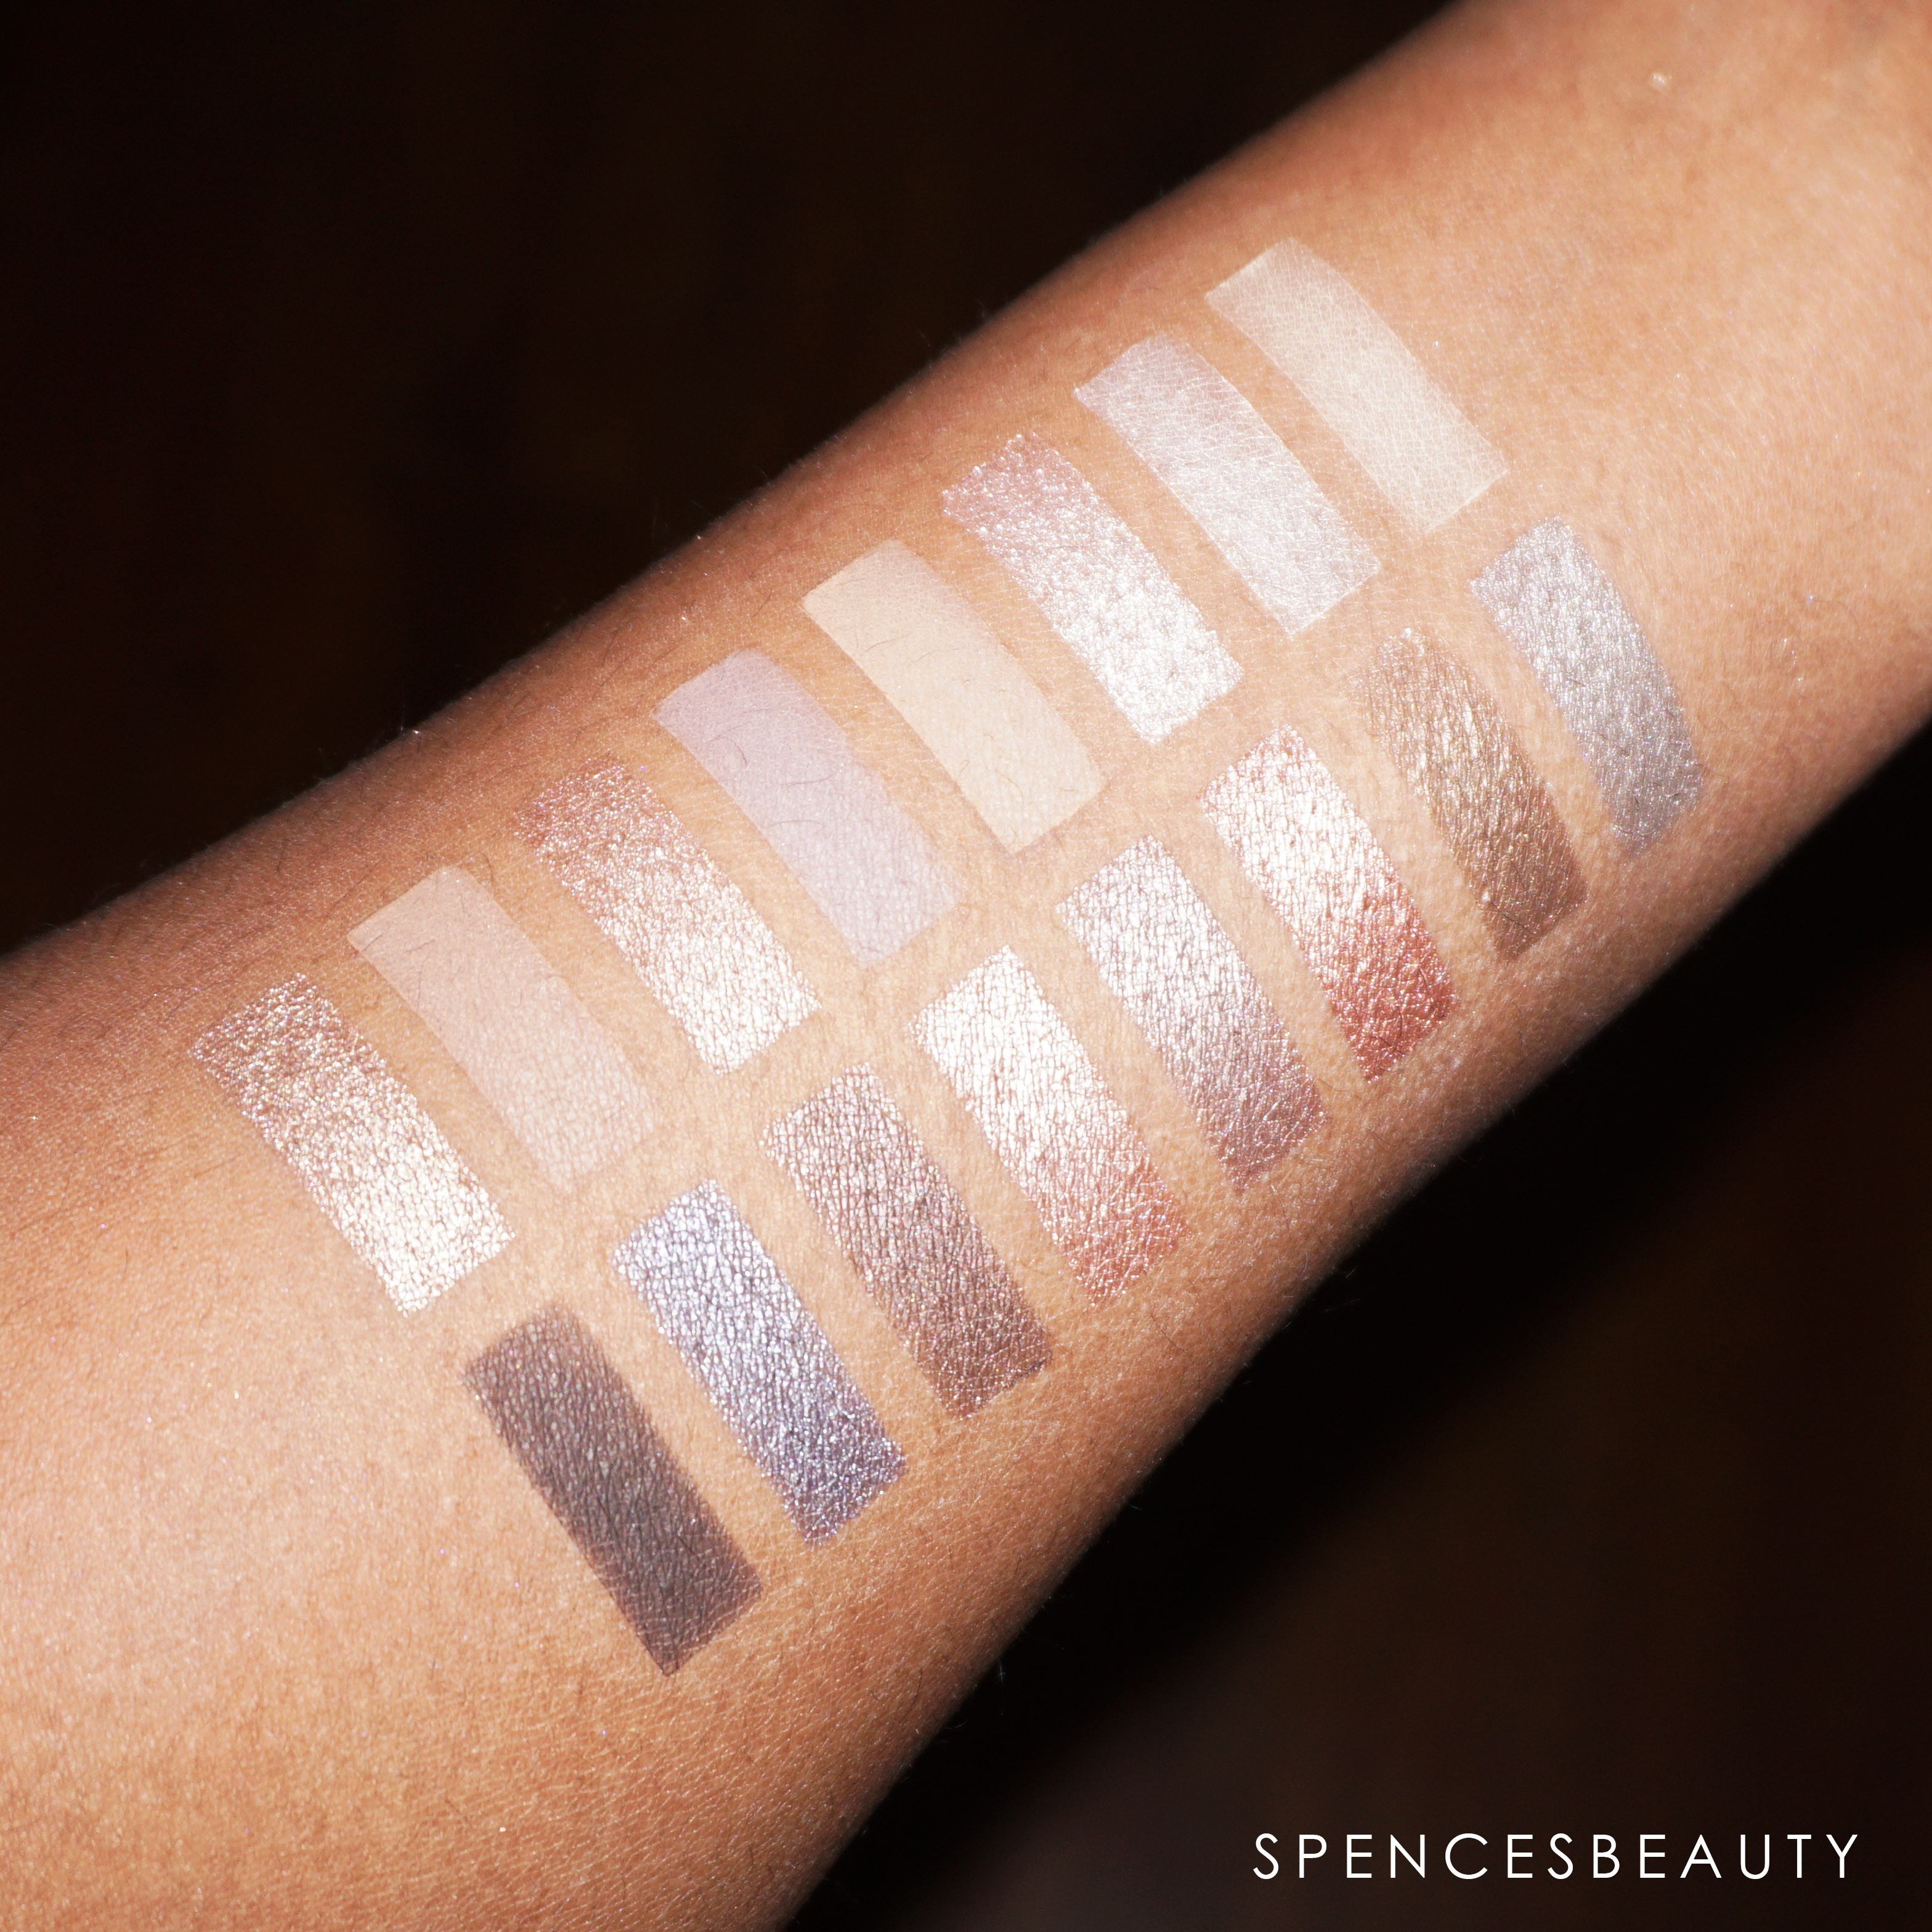 Revealed Matte Eyeshadow Palette by Coastal Scents #6